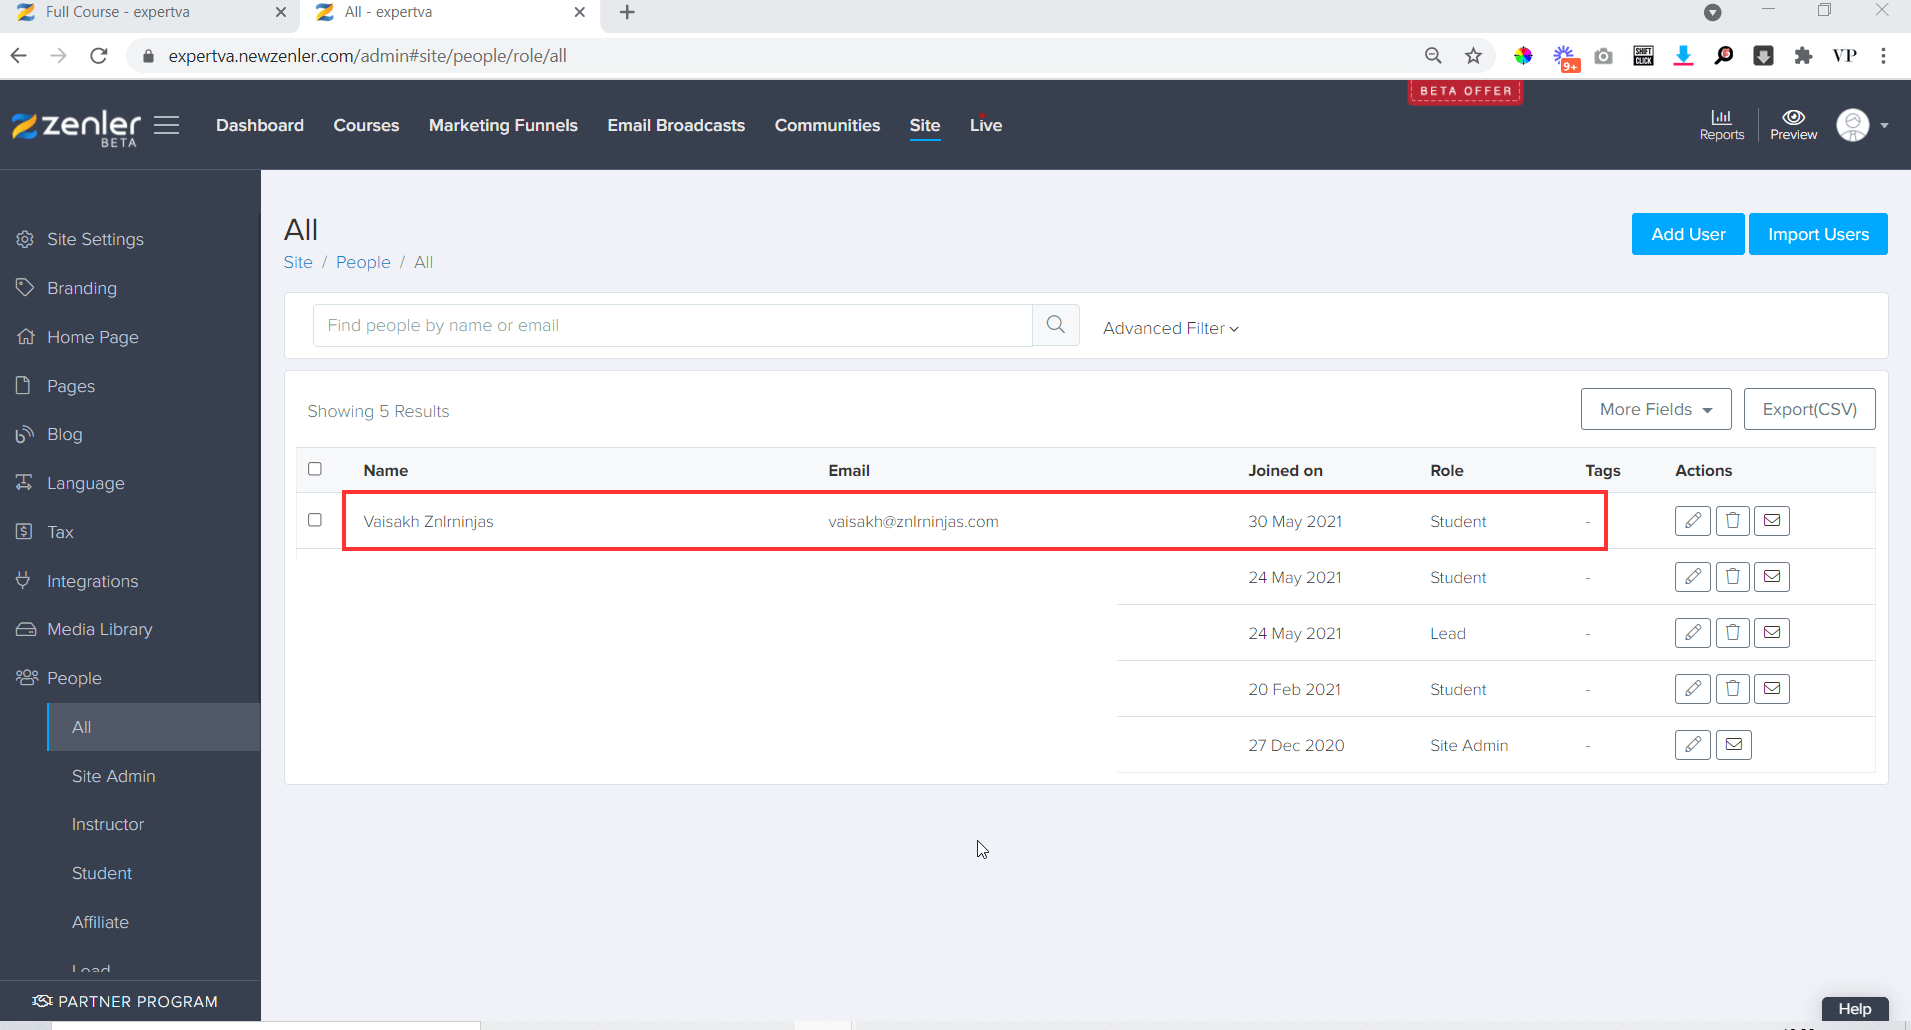 You can see that the stident is added to your site